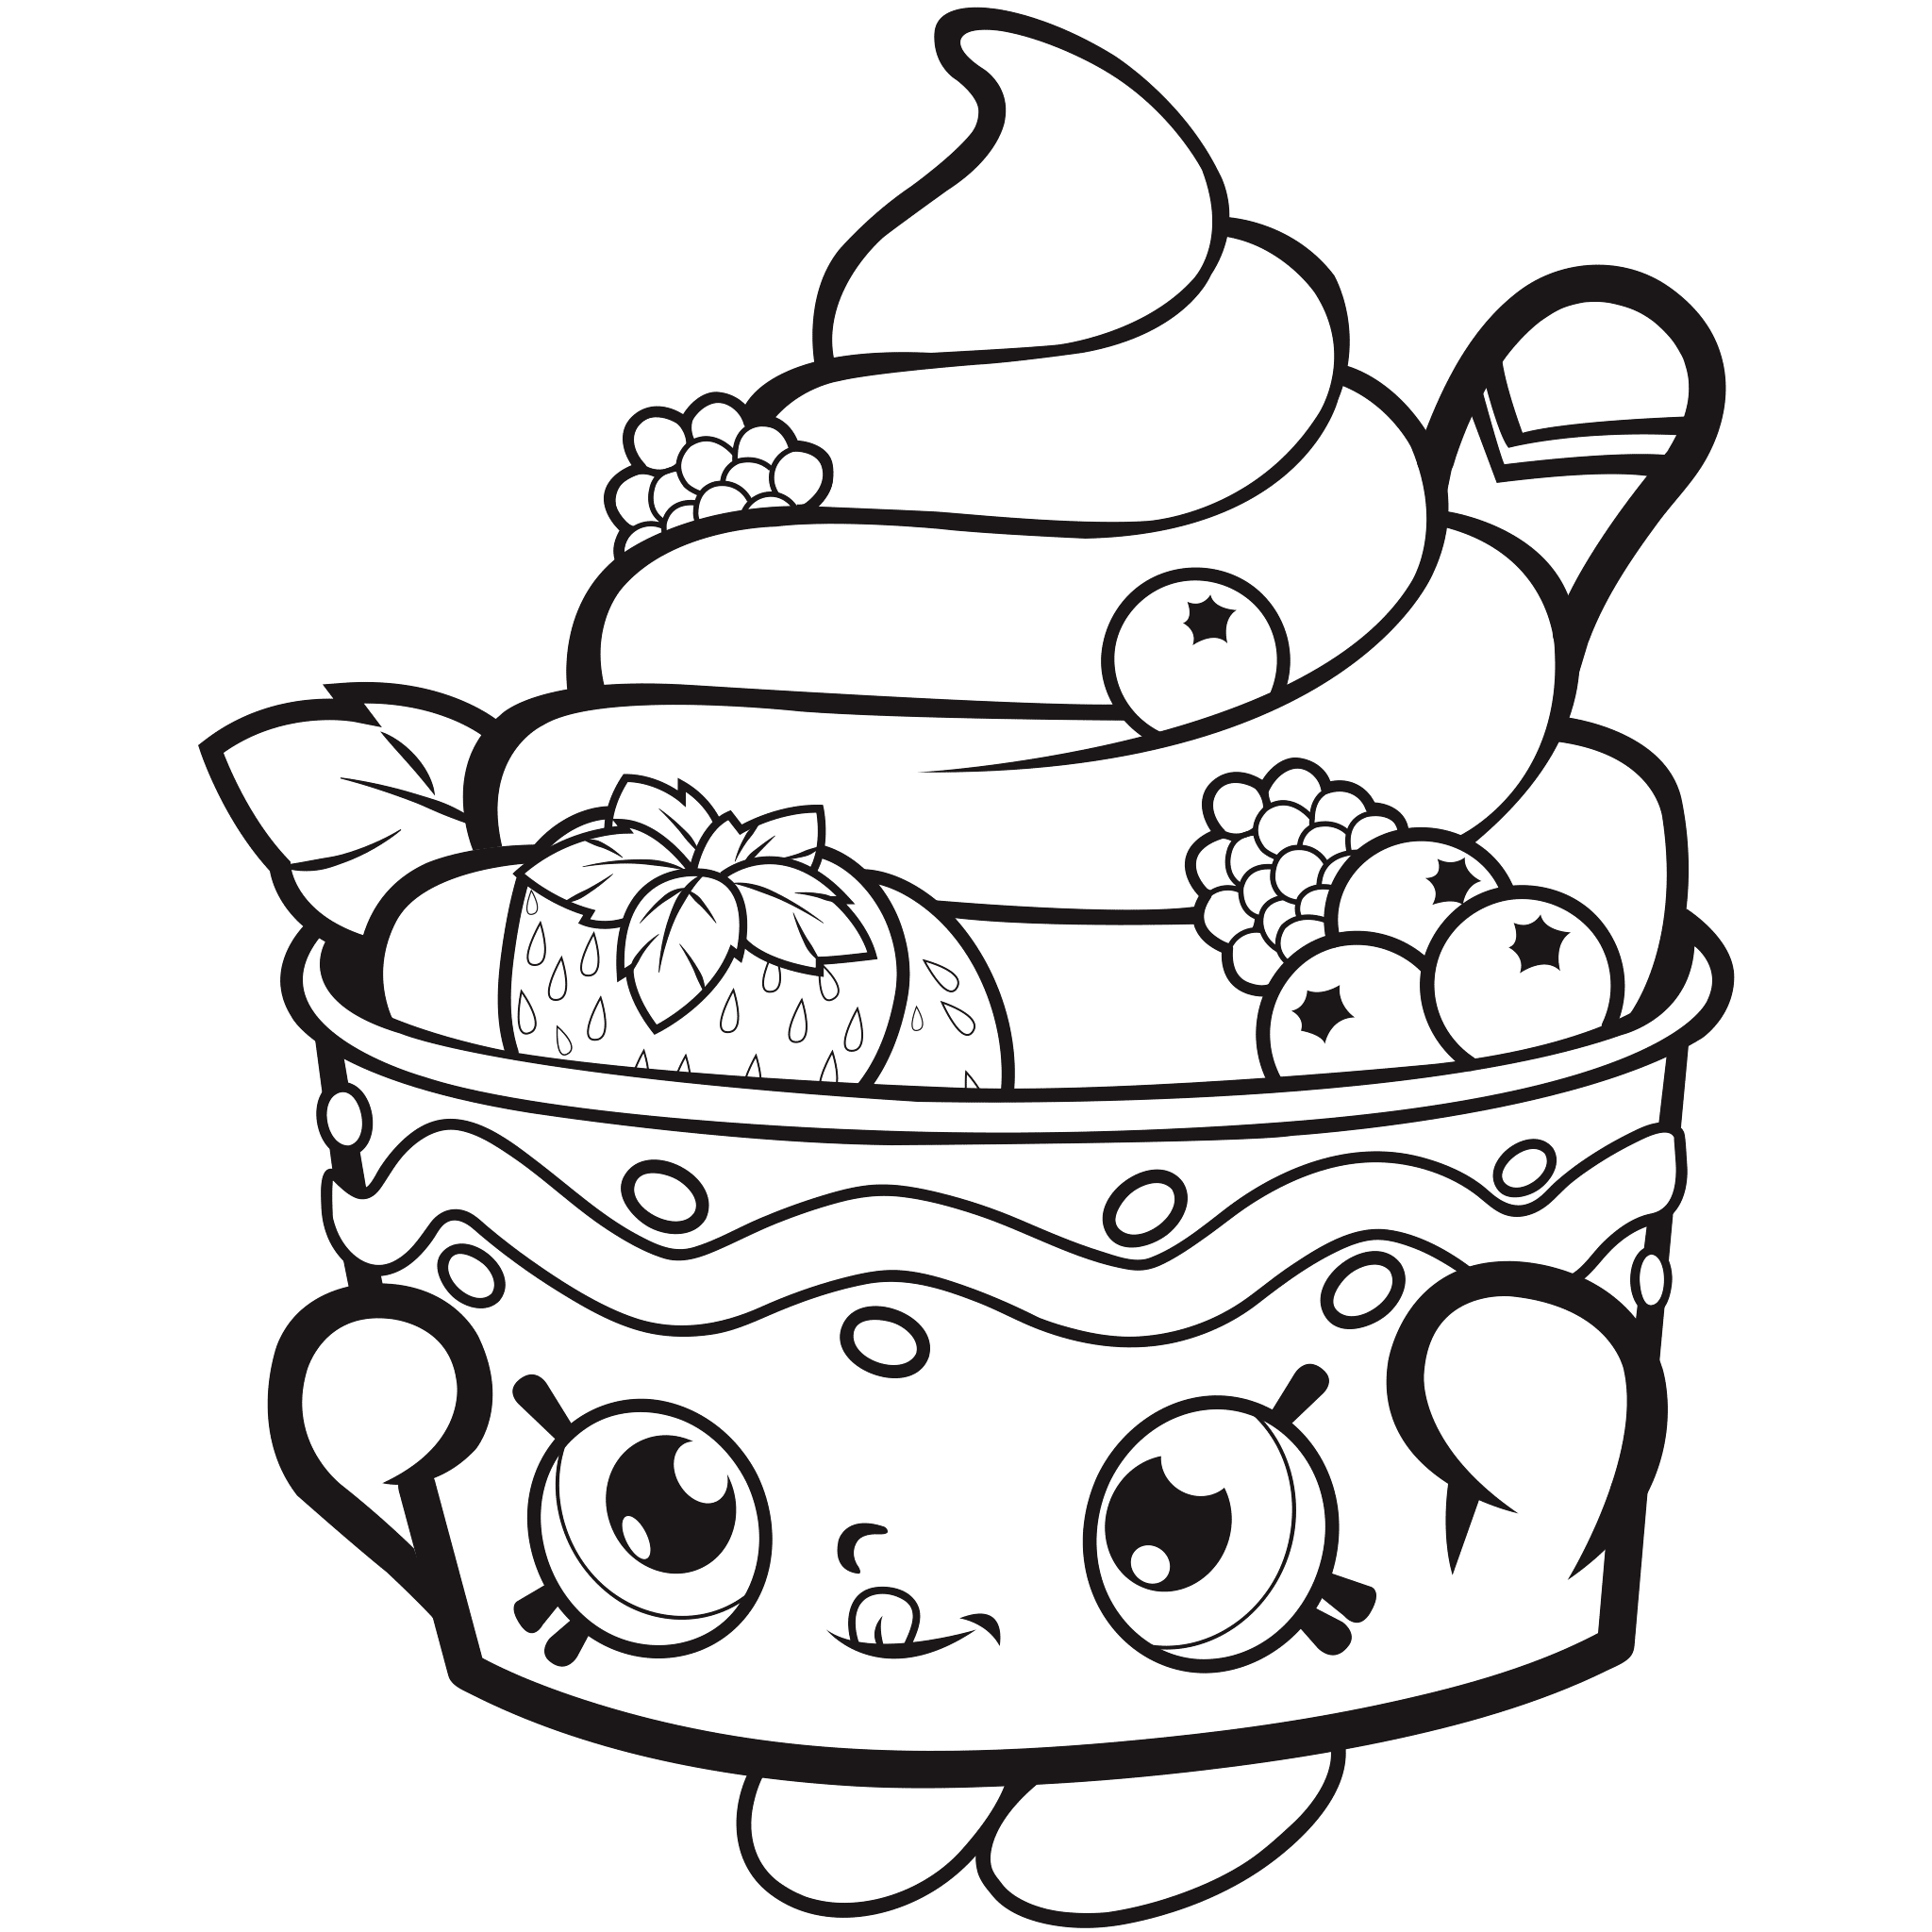 photo relating to Free Printable Shopkins Coloring Pages identified as Shopkins Coloring Internet pages - Ideal Coloring Webpages For Children